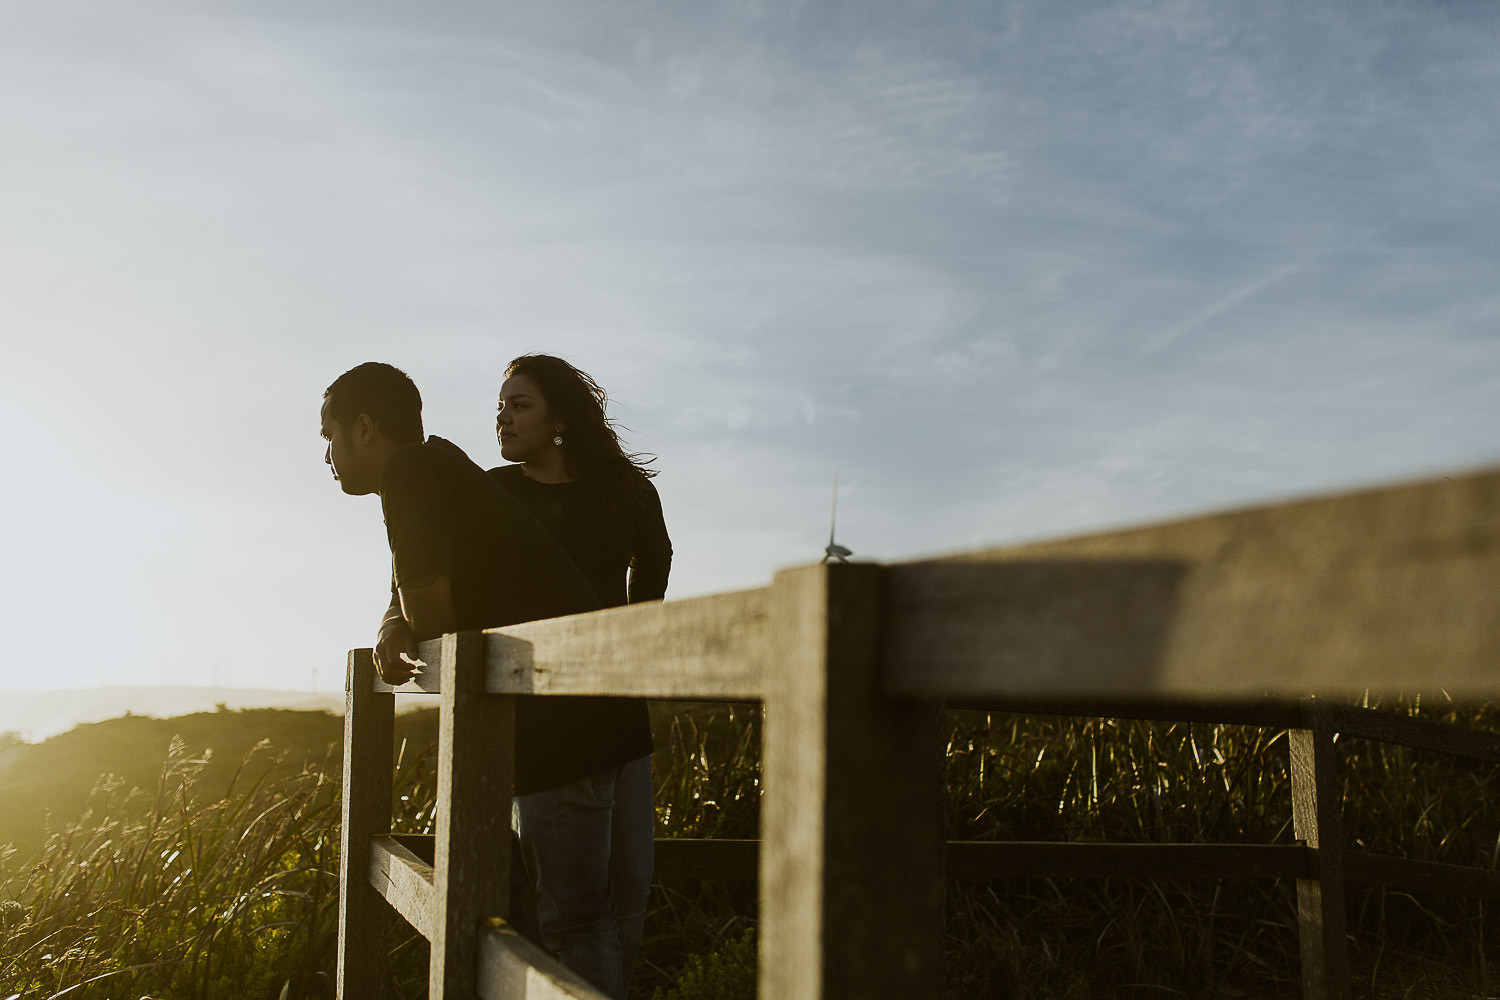 Mache & Michael looking out to the view at Albany WIndrfarm boardwalk